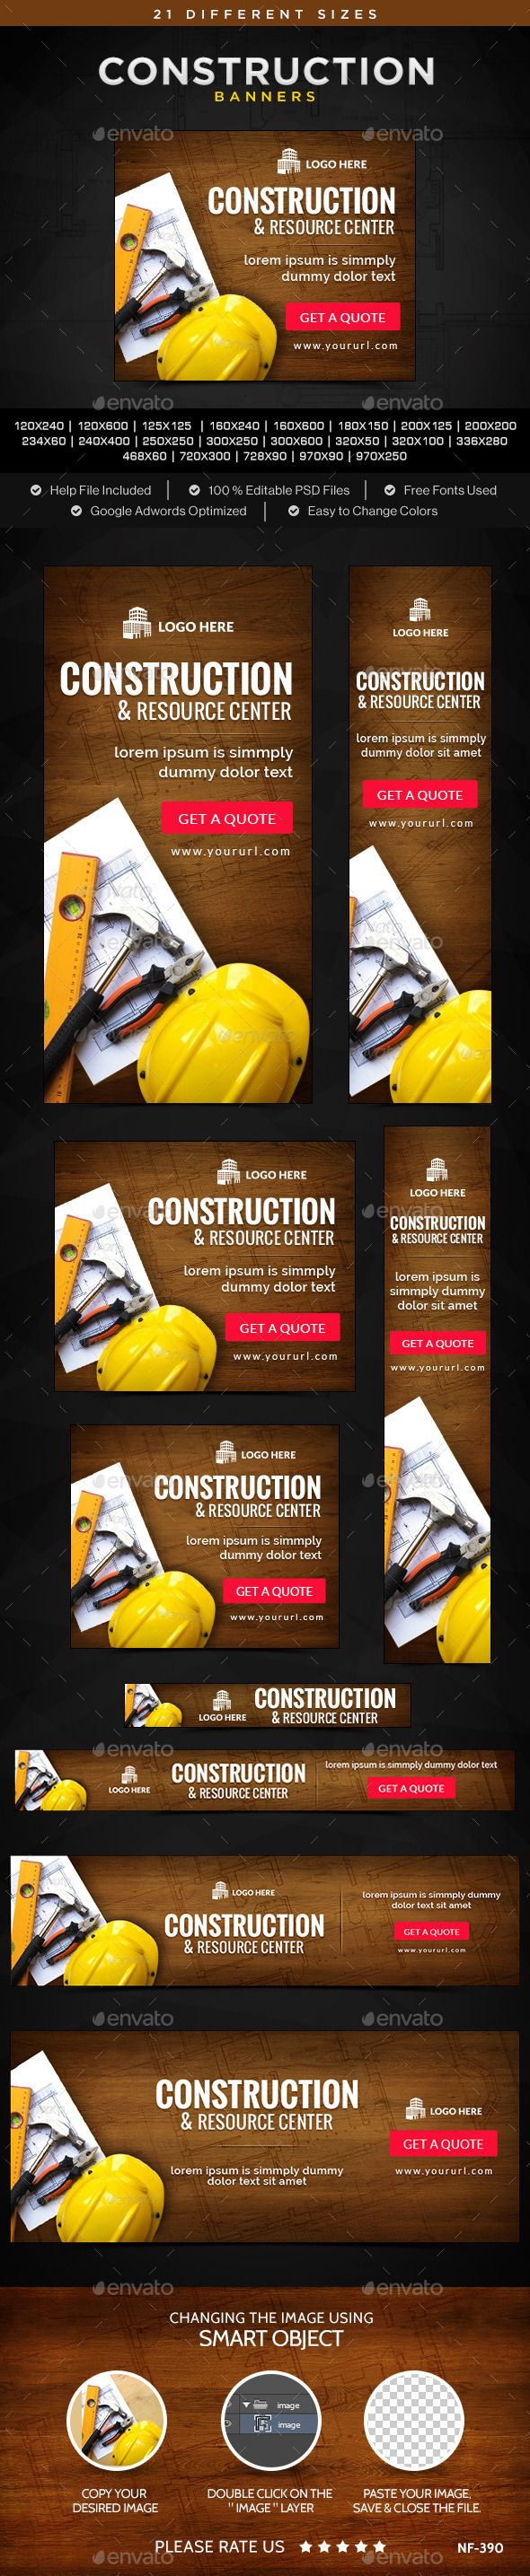 Construction Banners Template #webbanners Download: http://graphicriver.net/item/construction-banners/11469694?ref=ksioks